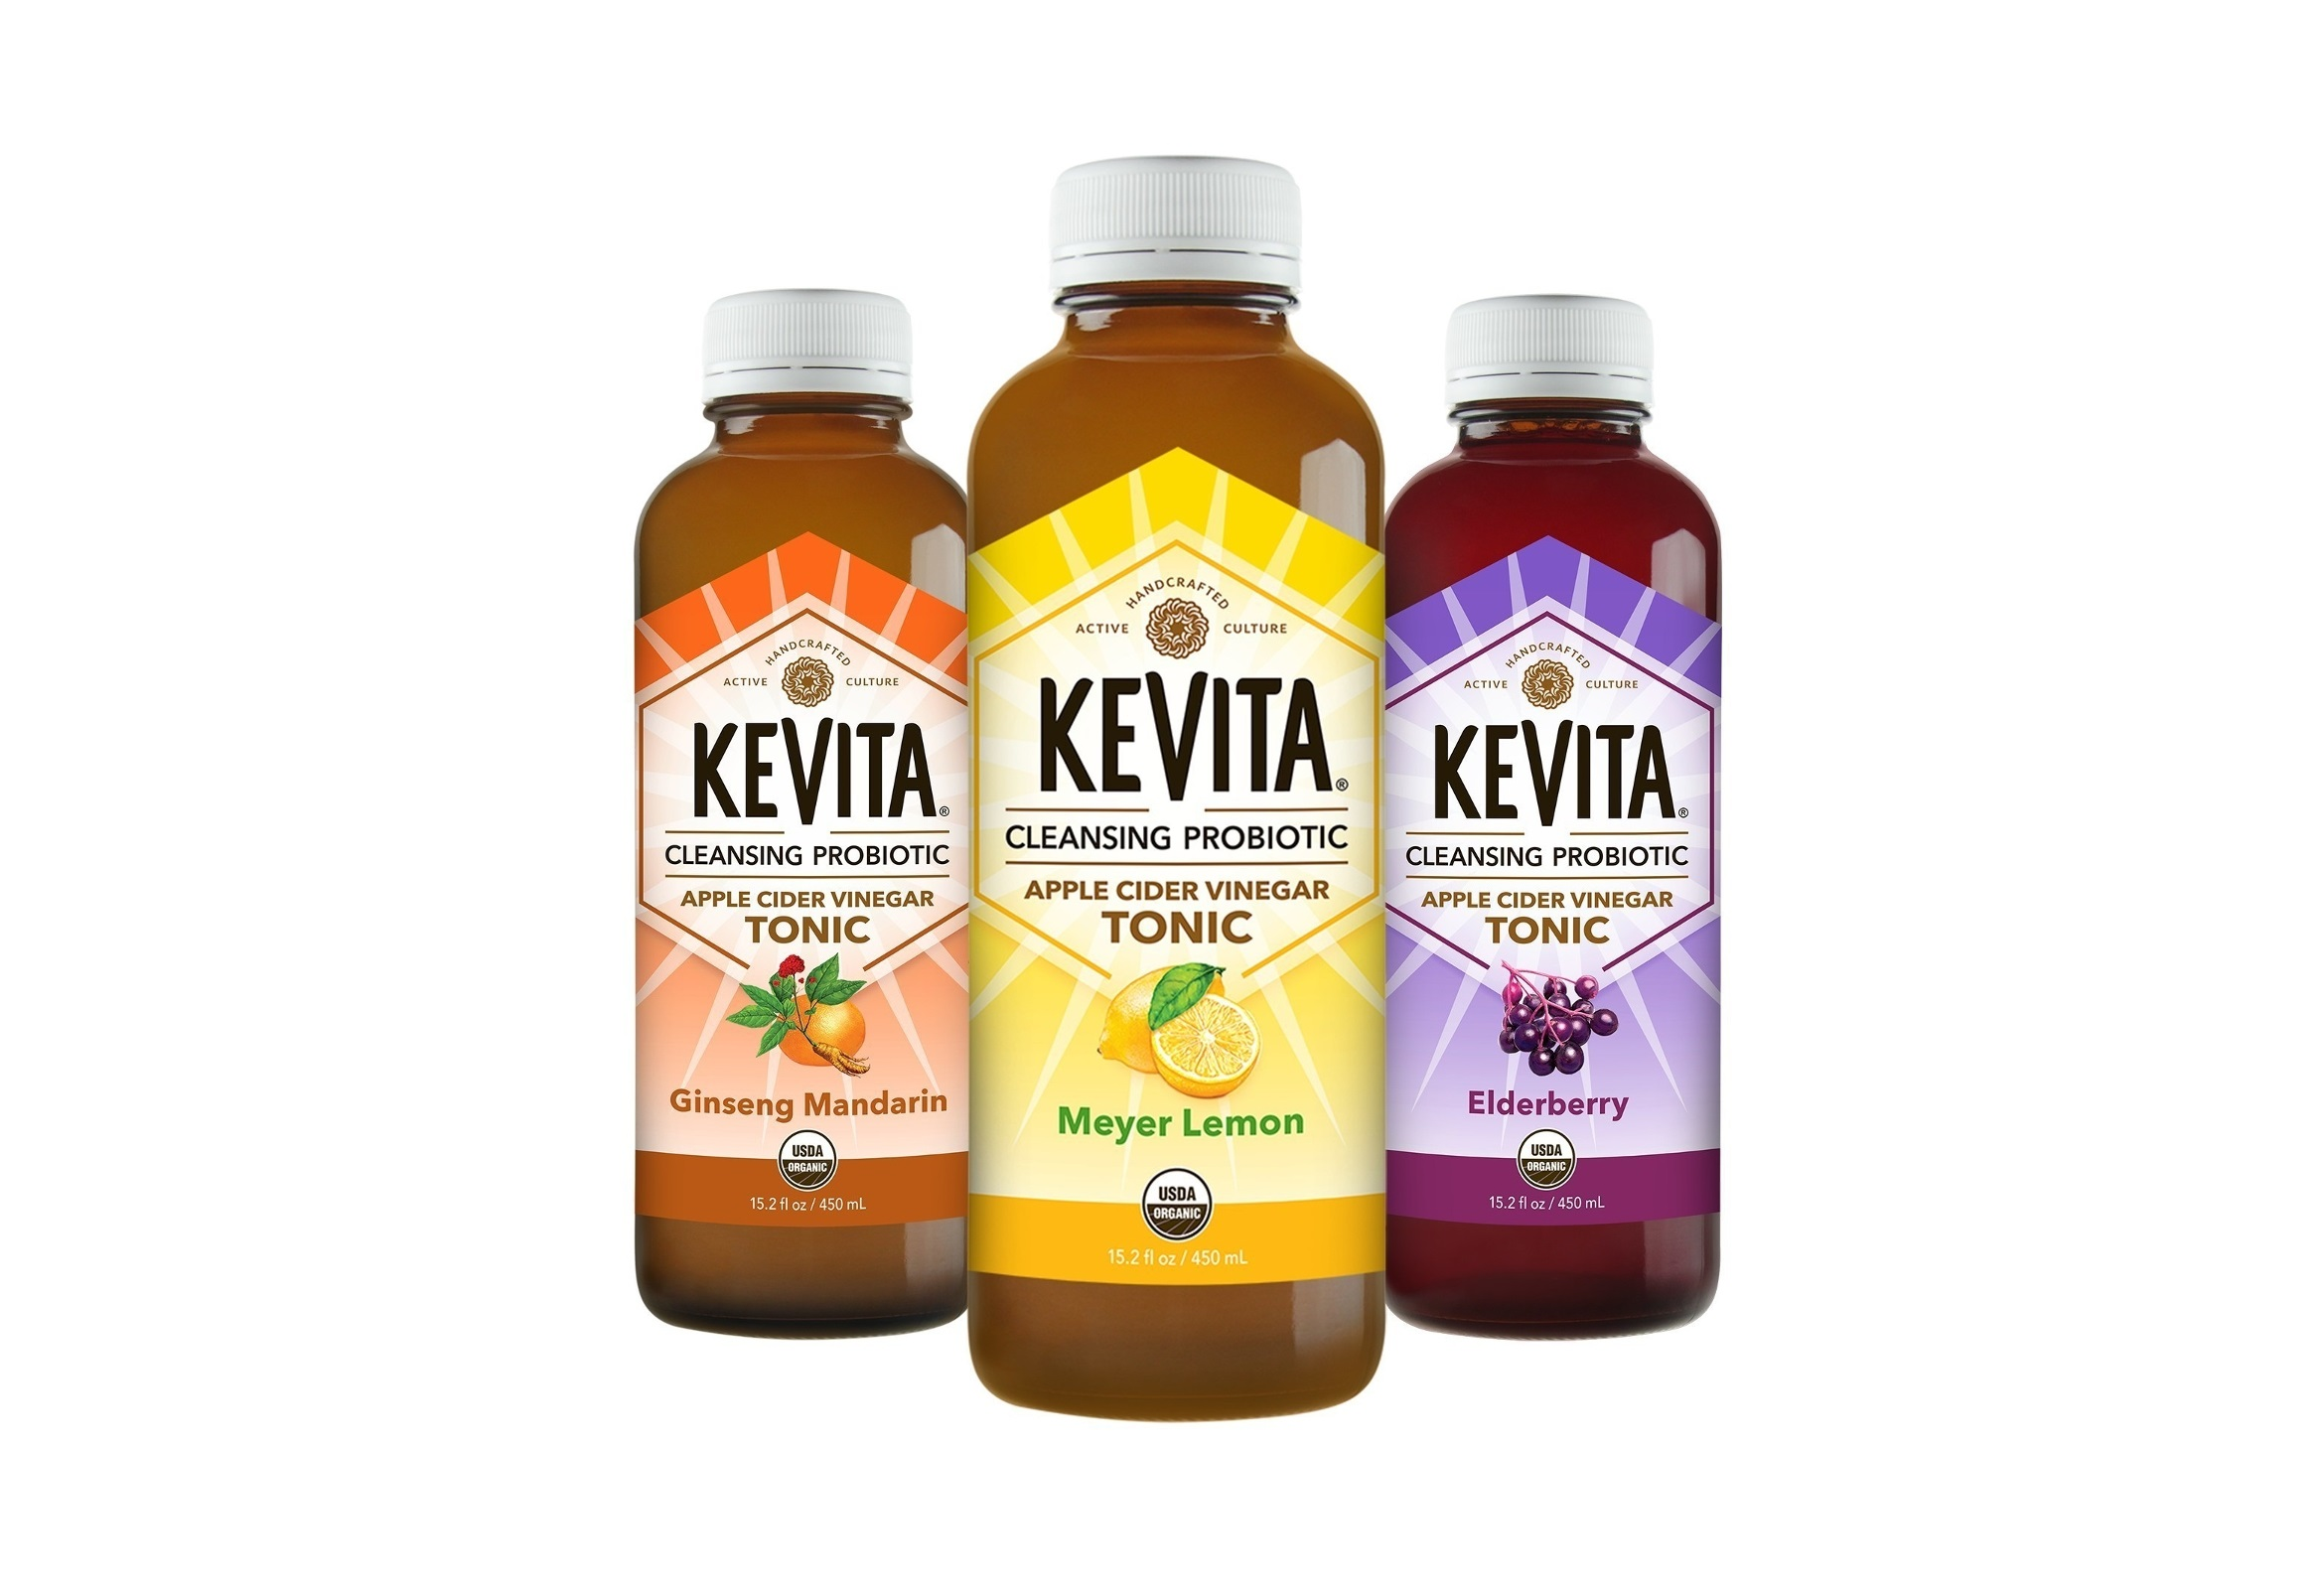 KeVita Releases Three New Cleansing Probiotic Tonic Flavors